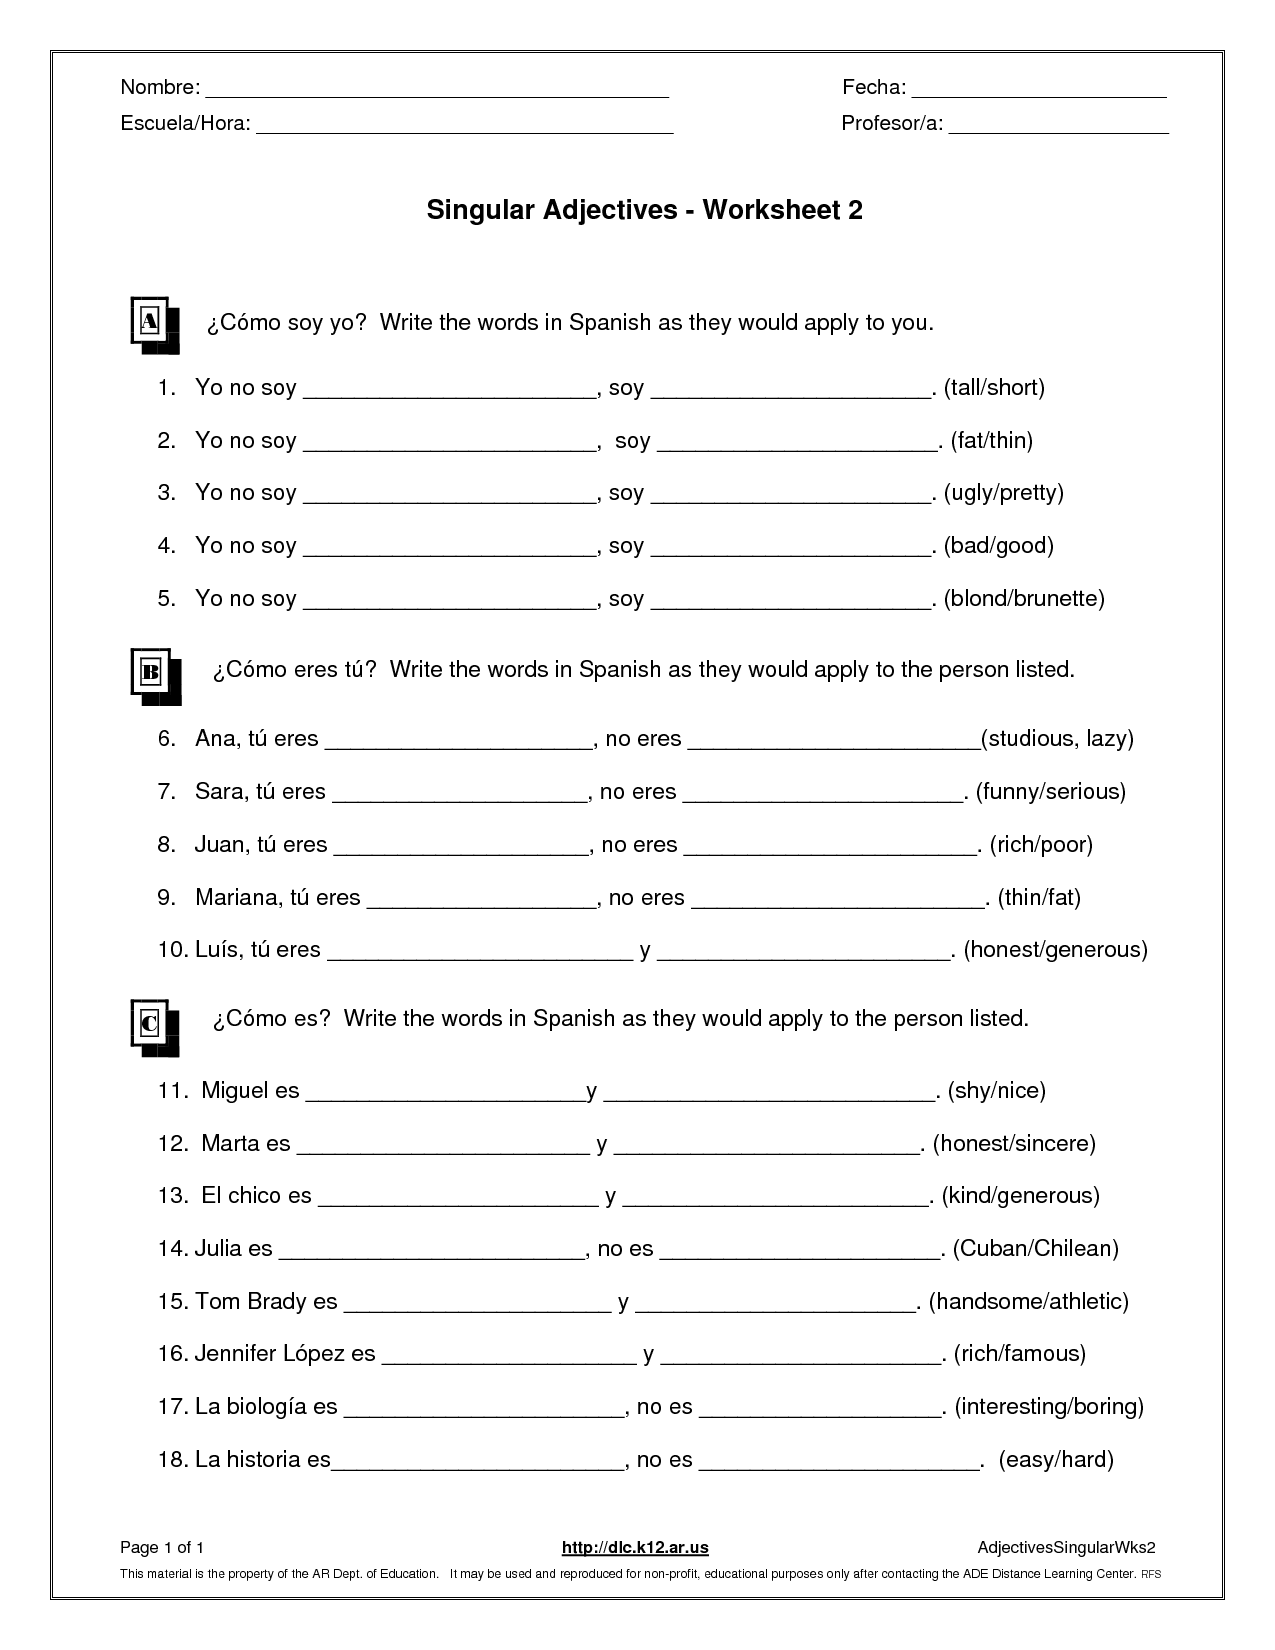 Worksheet On Demonstrative Adjectives In Spanish